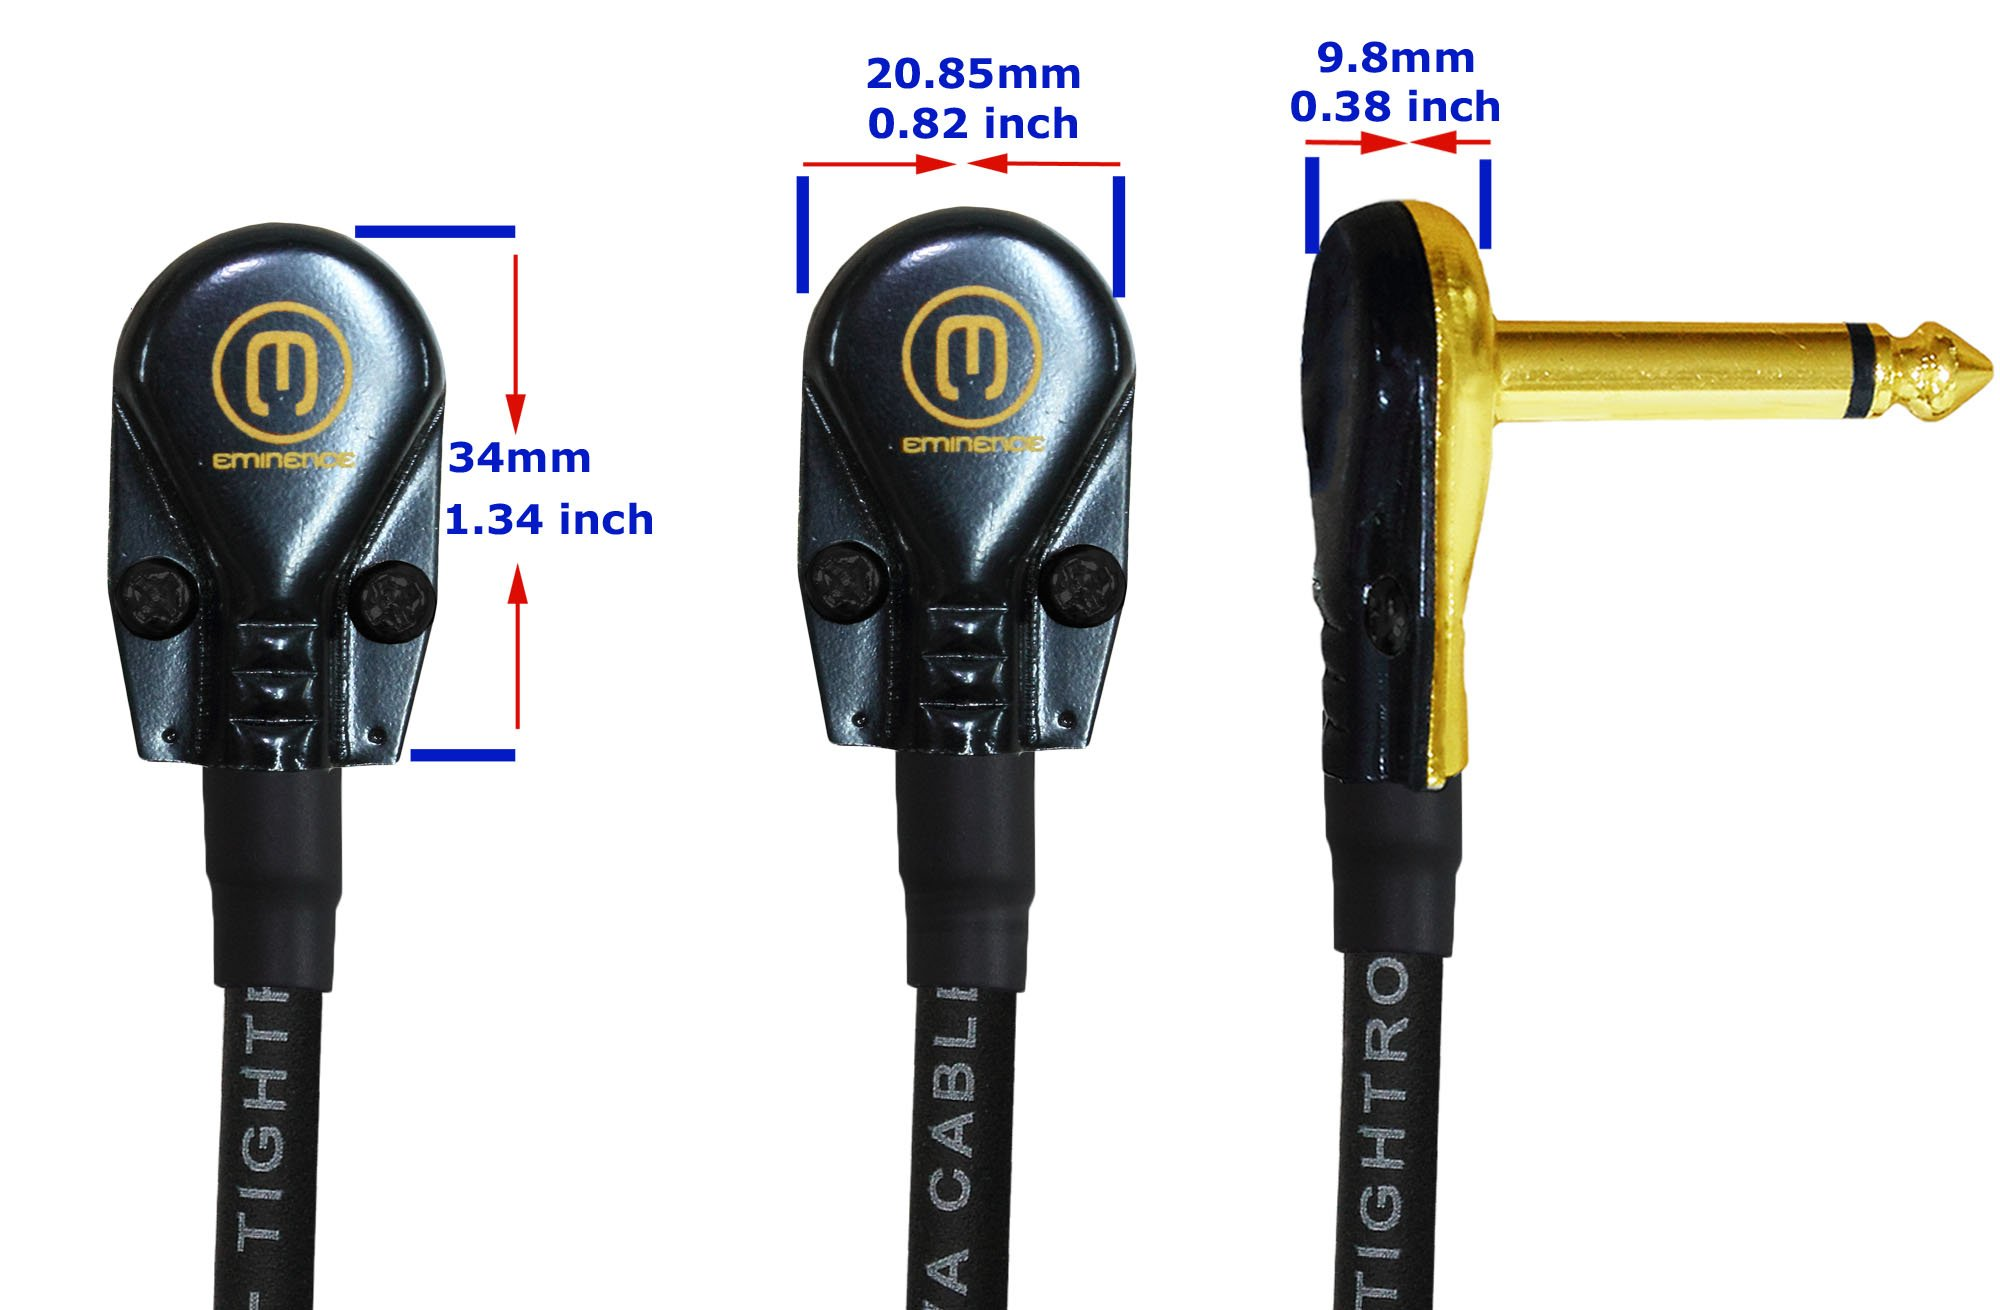 6 Units - Lava Tightrope (Black) - 6 Inch - Guitar Bass Effects Instrument, Patch Cable with Premium Gold Plated ¼ Inch (6.35mm) Low-Profile, Right Angled Pancake type TS Connectors by WORLDS BEST CABLES (Image #4)